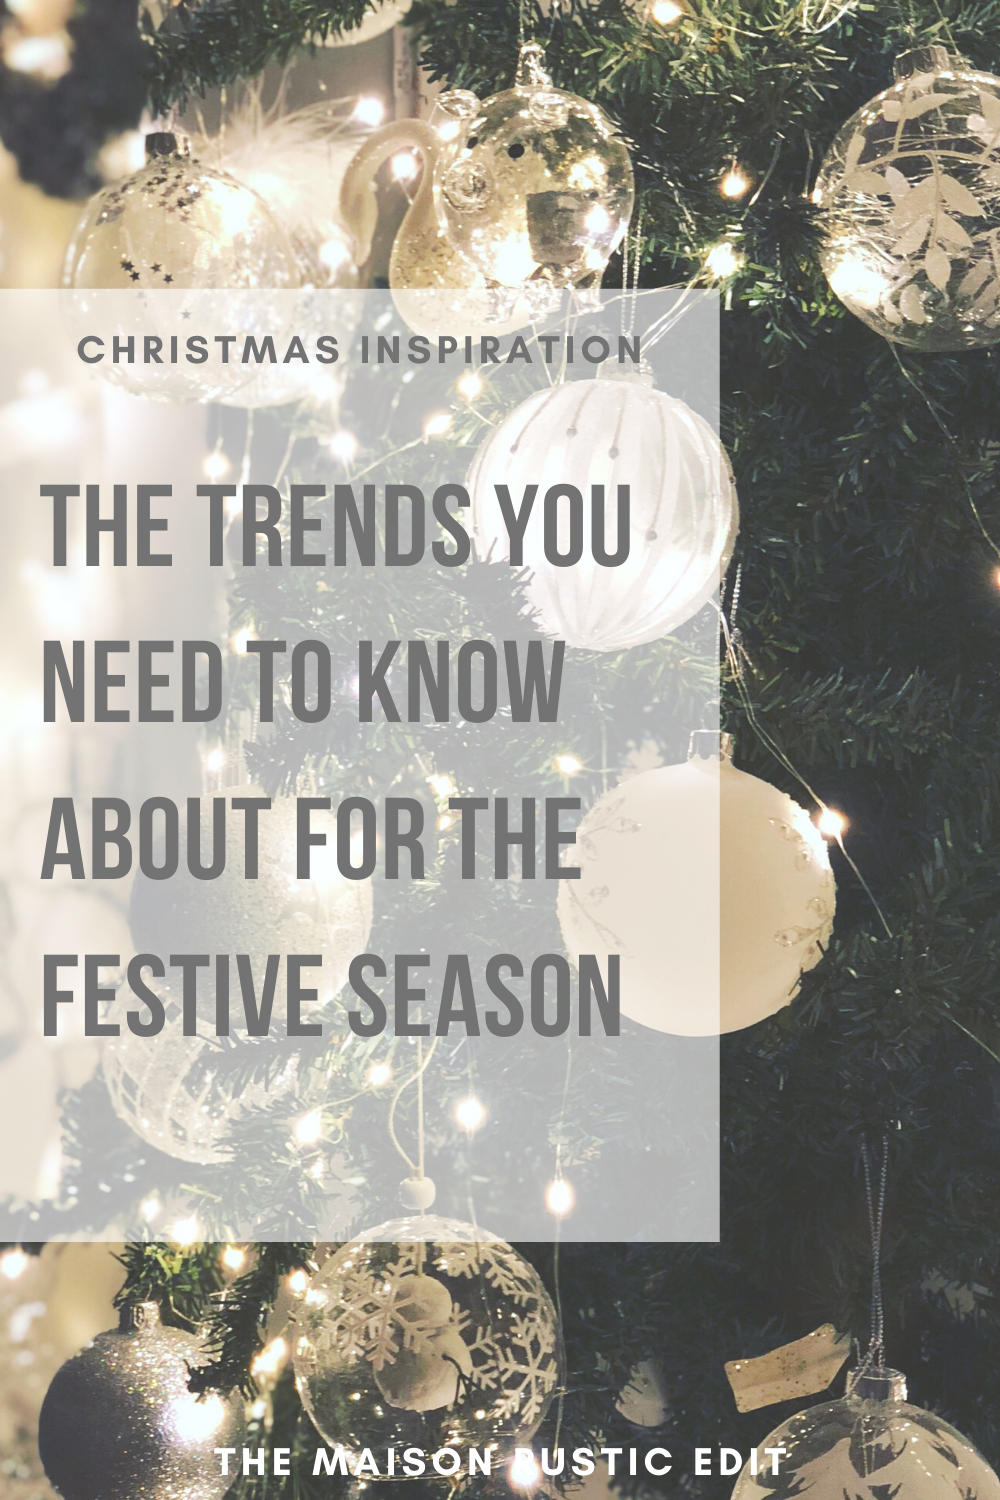 Christmas Inspiration: The Trends You Need To Know About For Festive Season